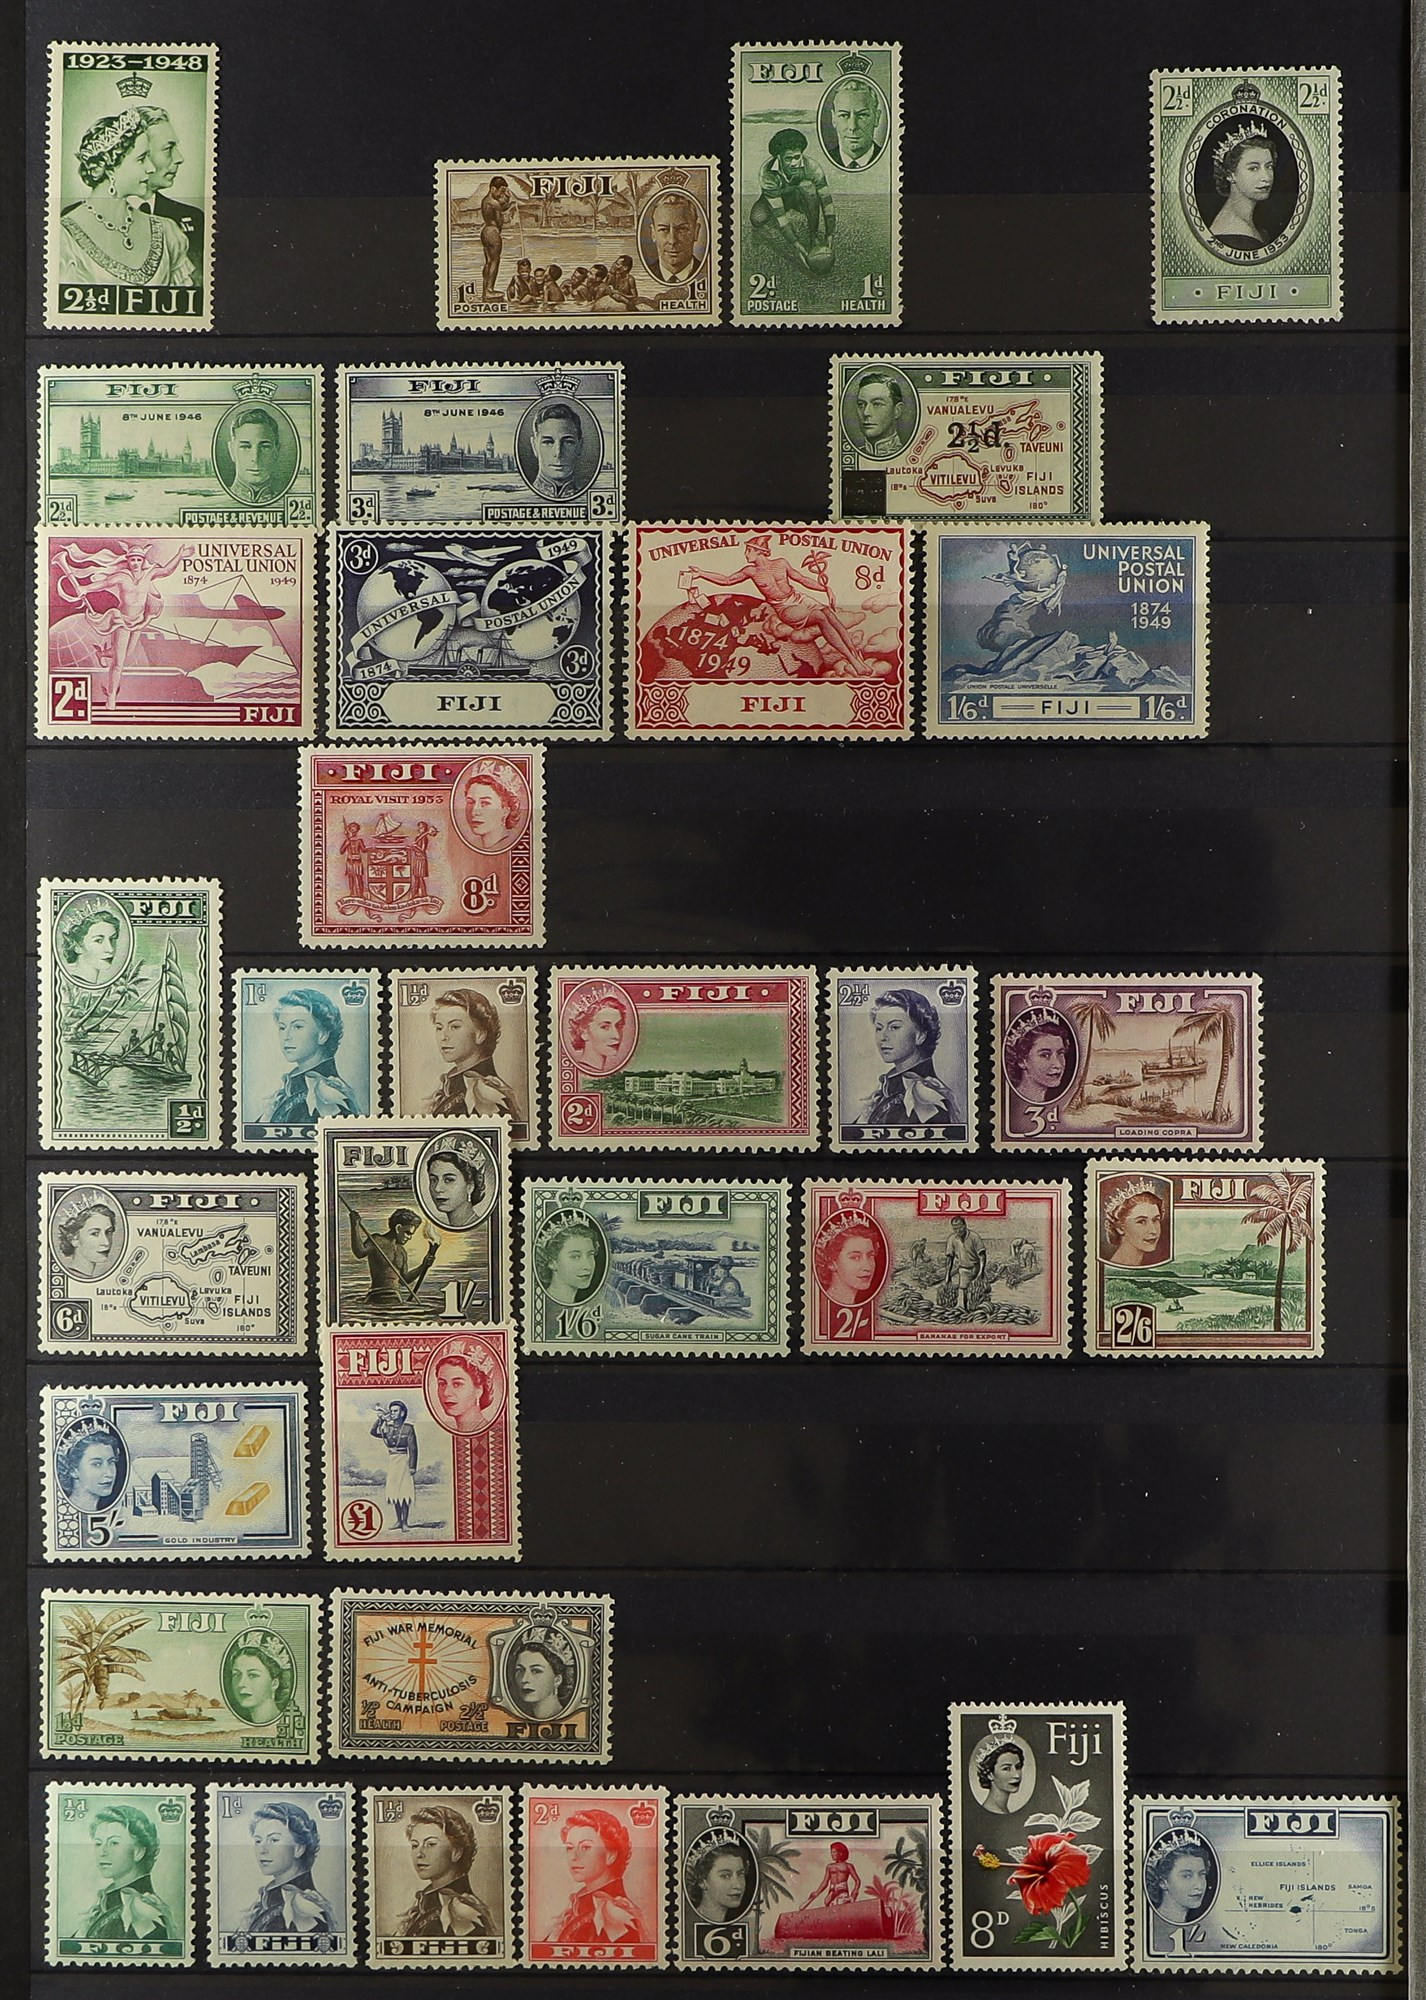 FIJI 1903-70 FINE MINT COLLECTION incl. 1903 set to 5d (excl. ½d), 1904-09 ½d & 1d, 1906-12 to 2½ - Image 5 of 9